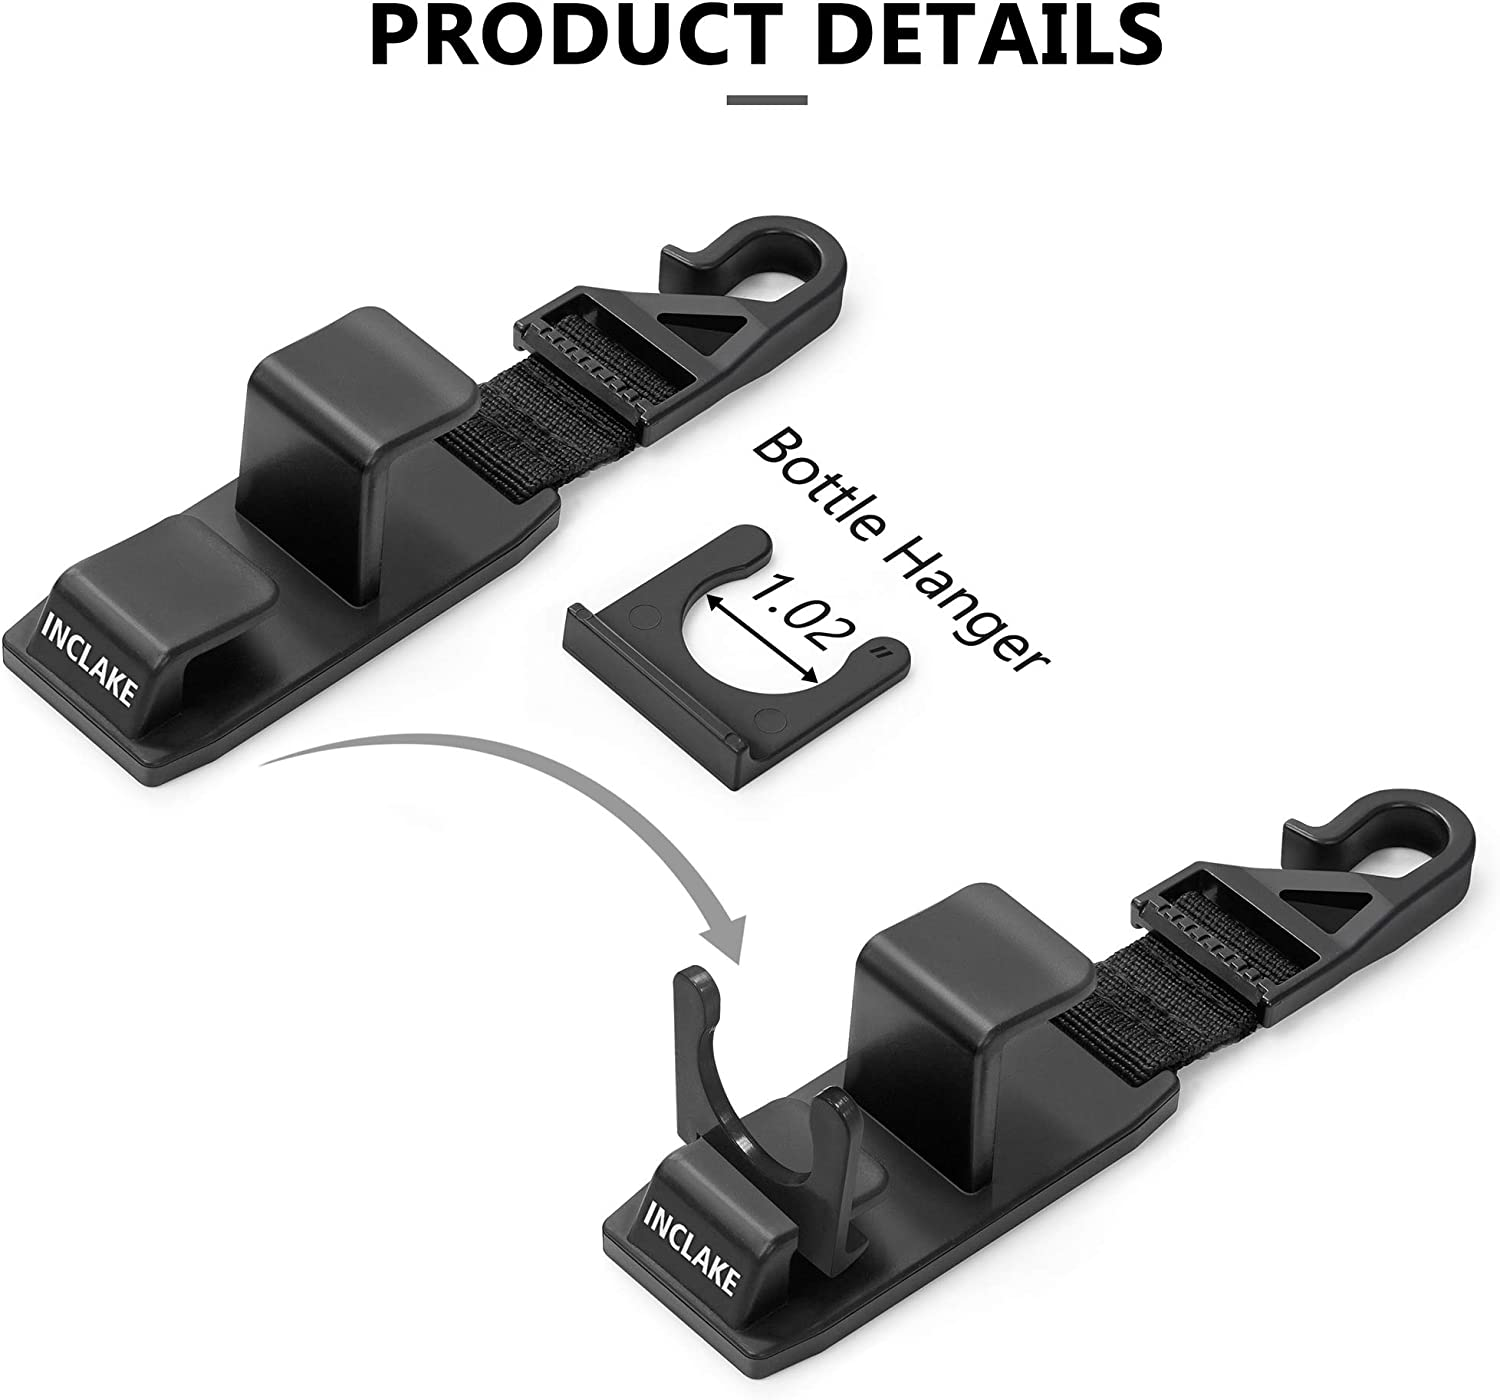 4 PC Laptop Bag Headrest Hooks with Bottle Holder for Car Front Back Seat Strong and Durable Hooks Holder with 33Ib Capacity for Tote Bag Drinking Backpack Universal Shopping Bag